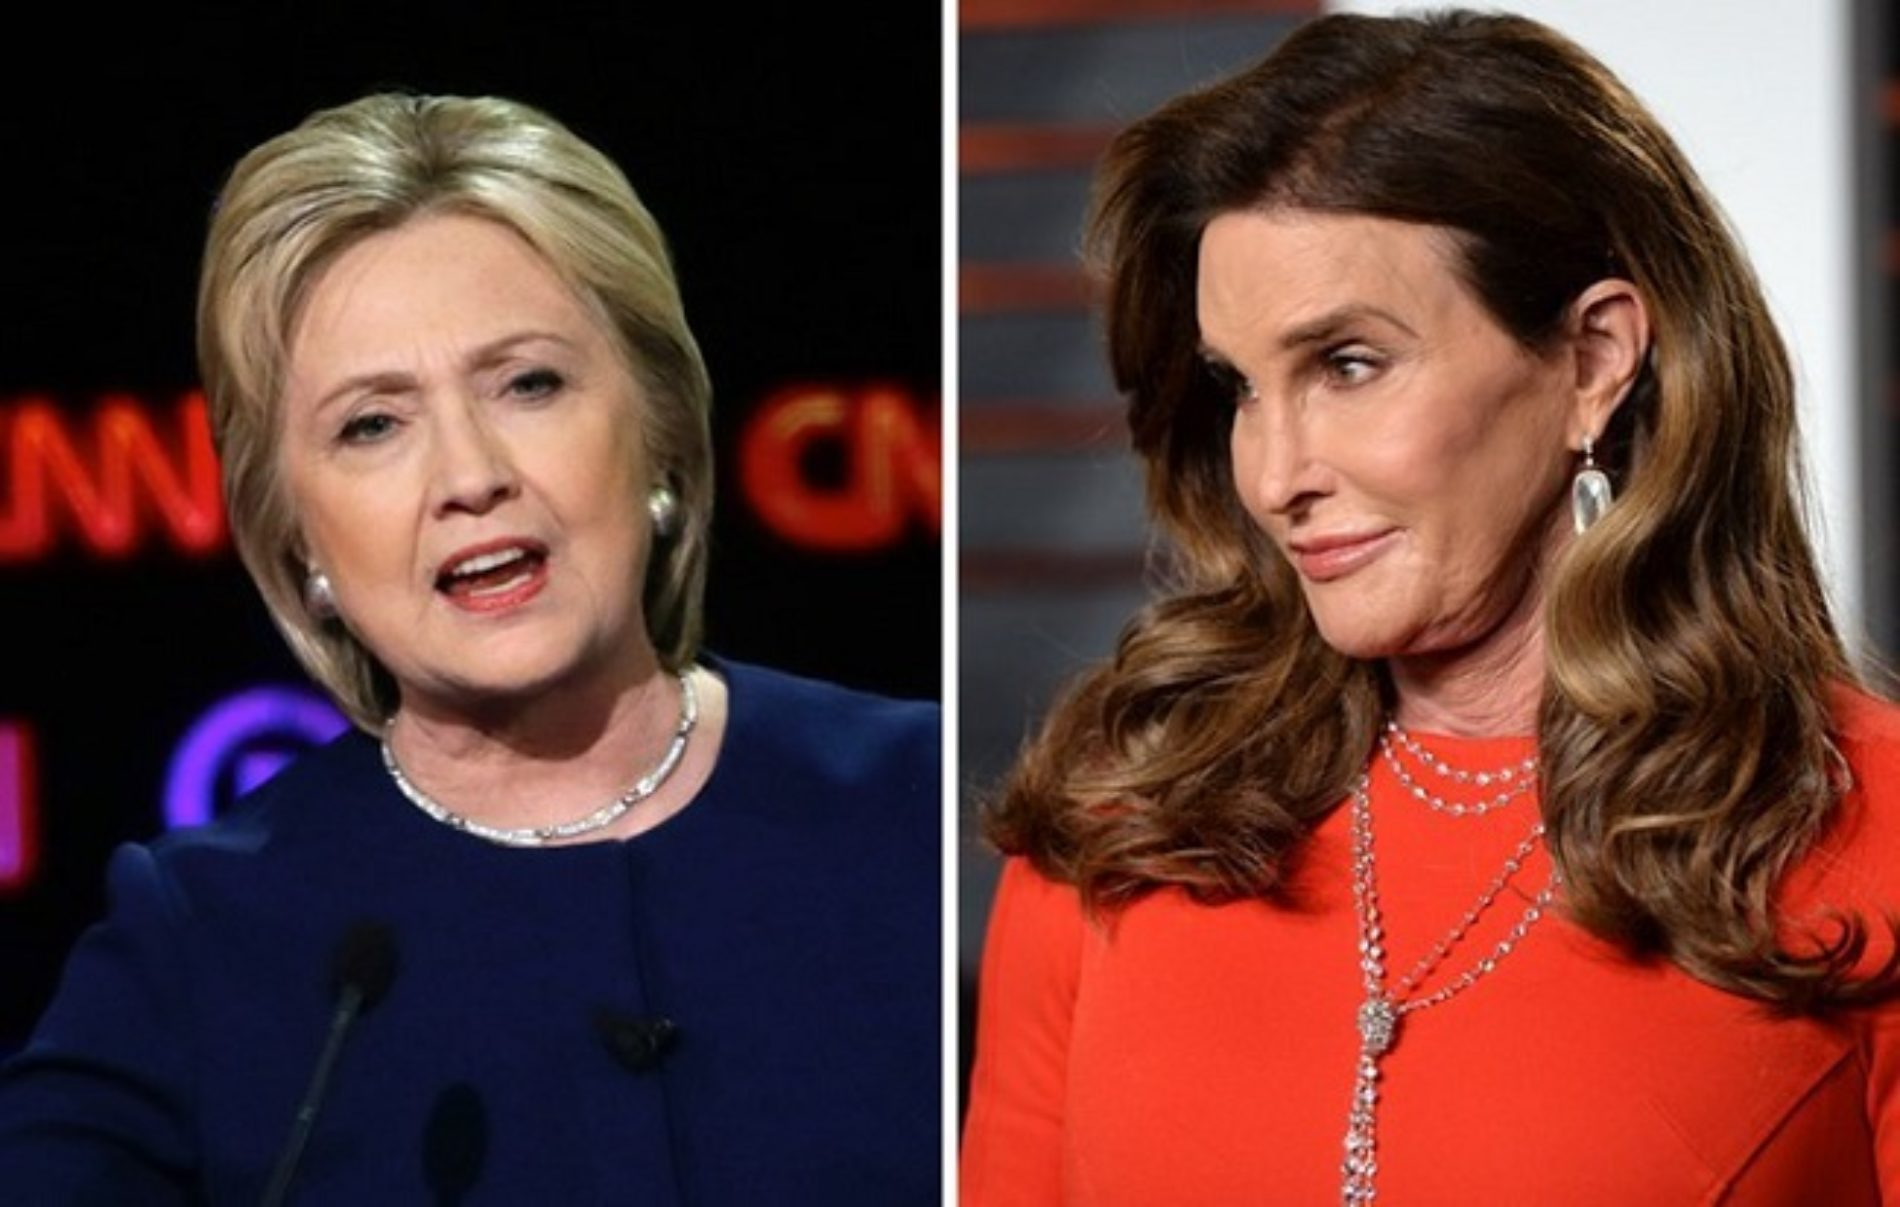 """She Only Cares About Herself."" Caitlyn Jenner Slams Hillary Clinton"